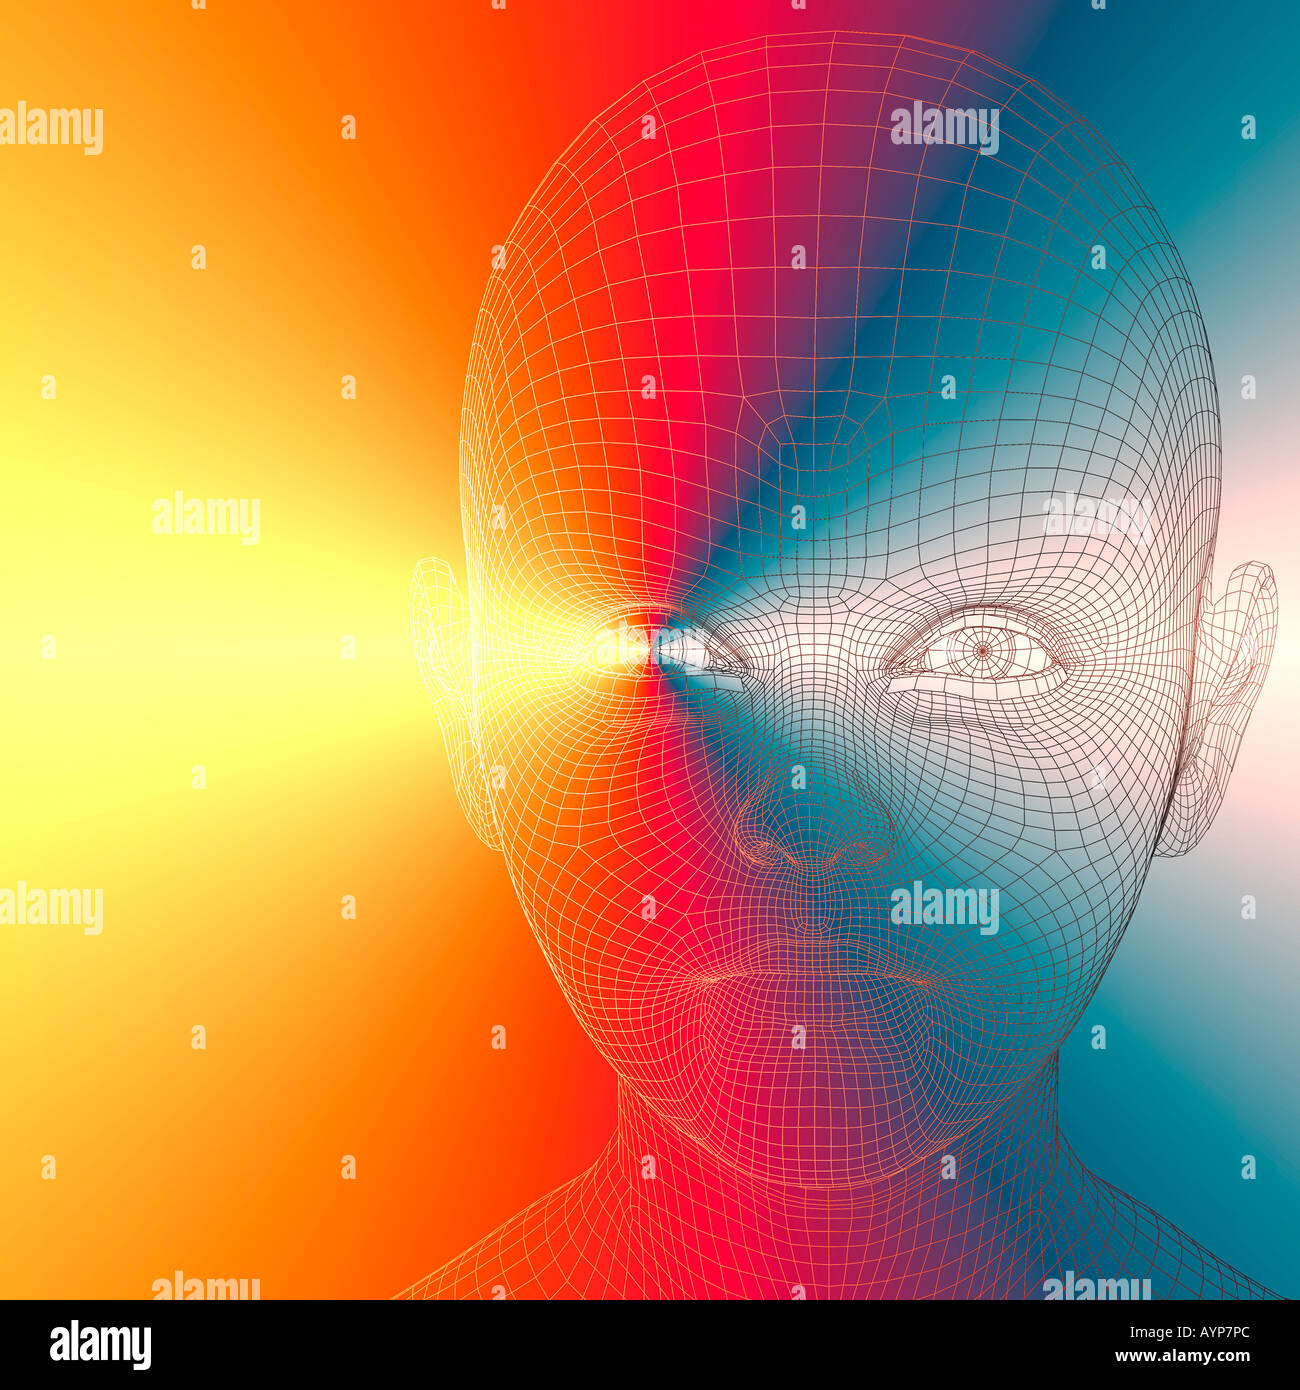 Computer Generated Wire Frame View Stock Photos Ayp Wiring Diagram 3d Of Face Young Man Image